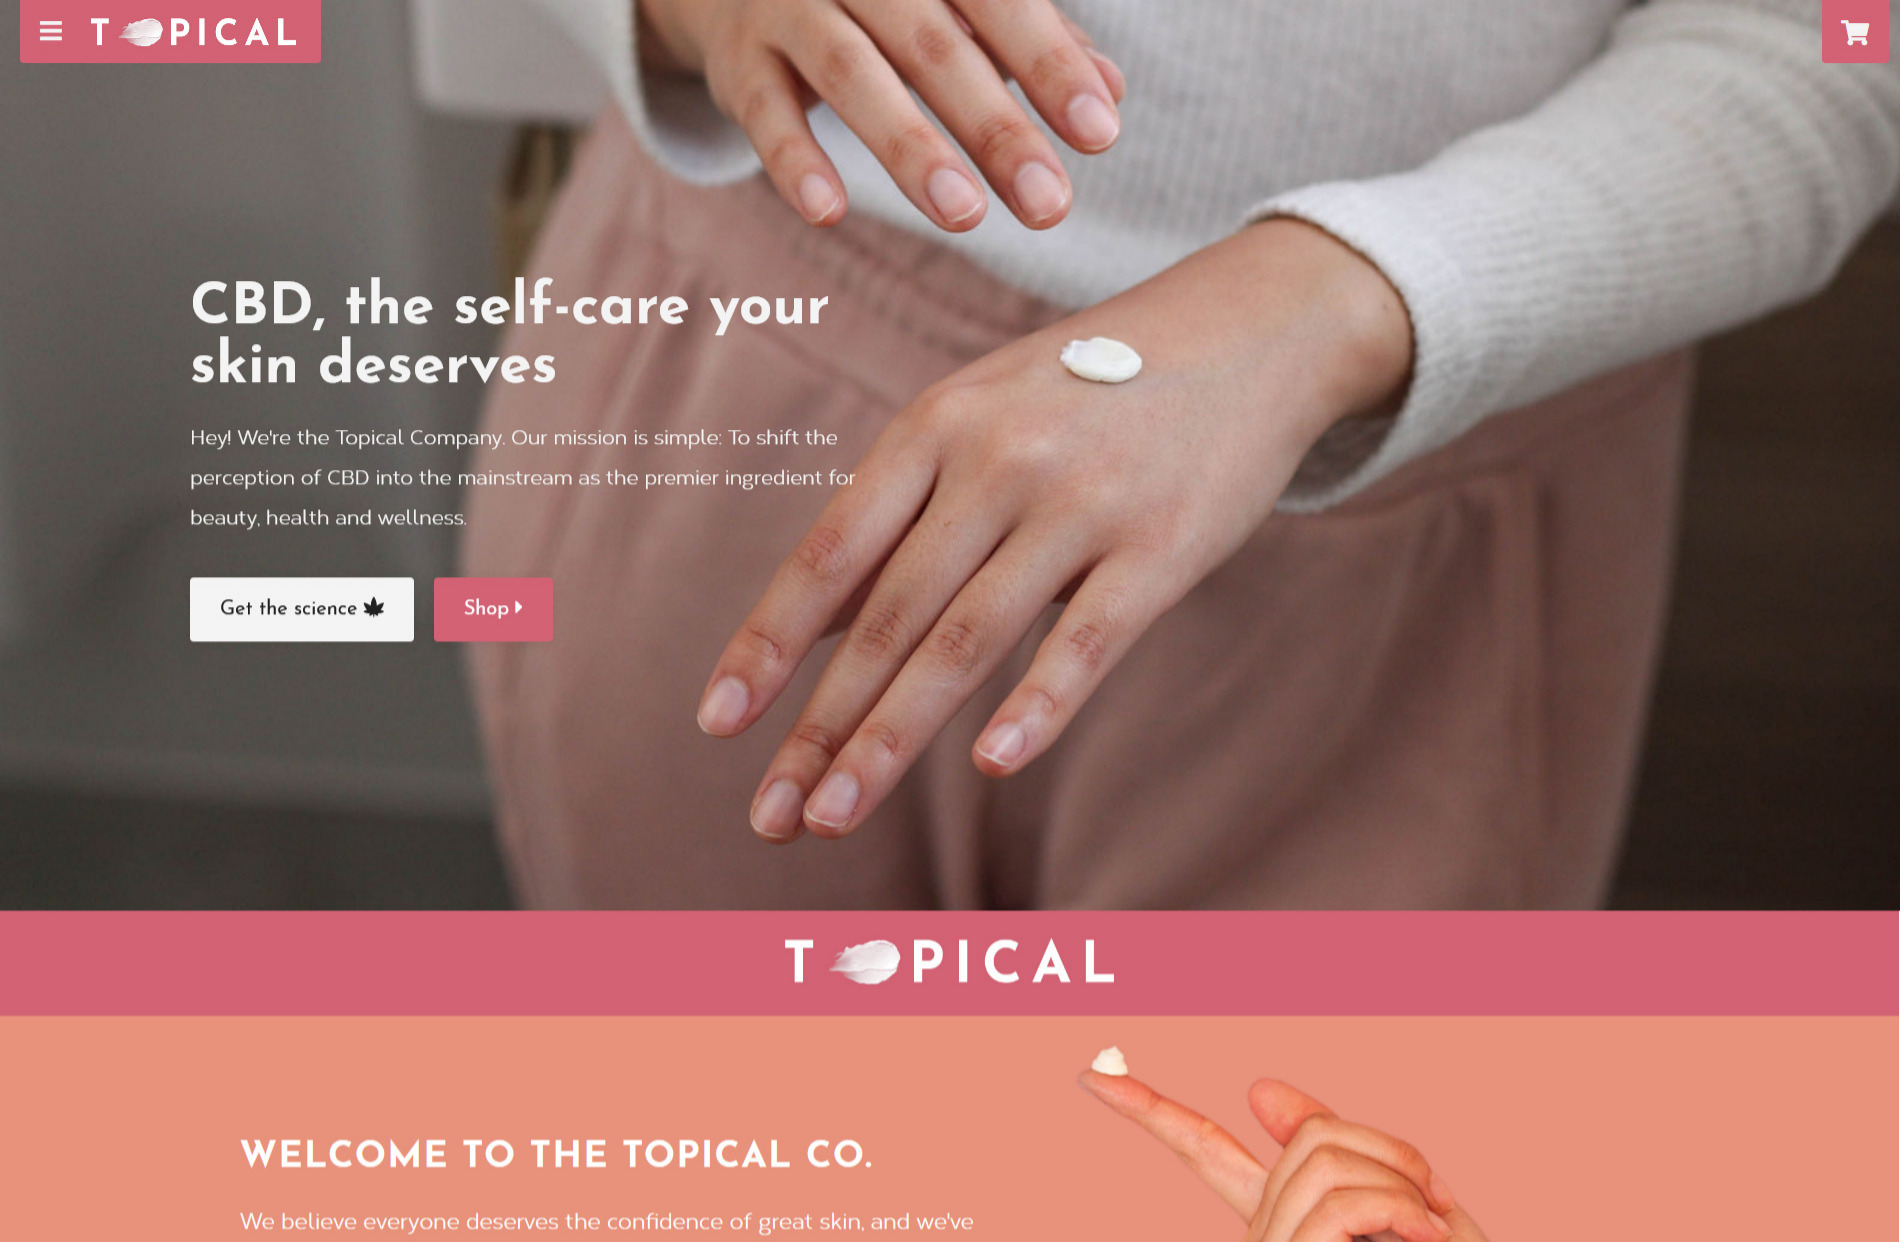 Screenshot of the homepage of The Topical Co showing a person applying lotion.